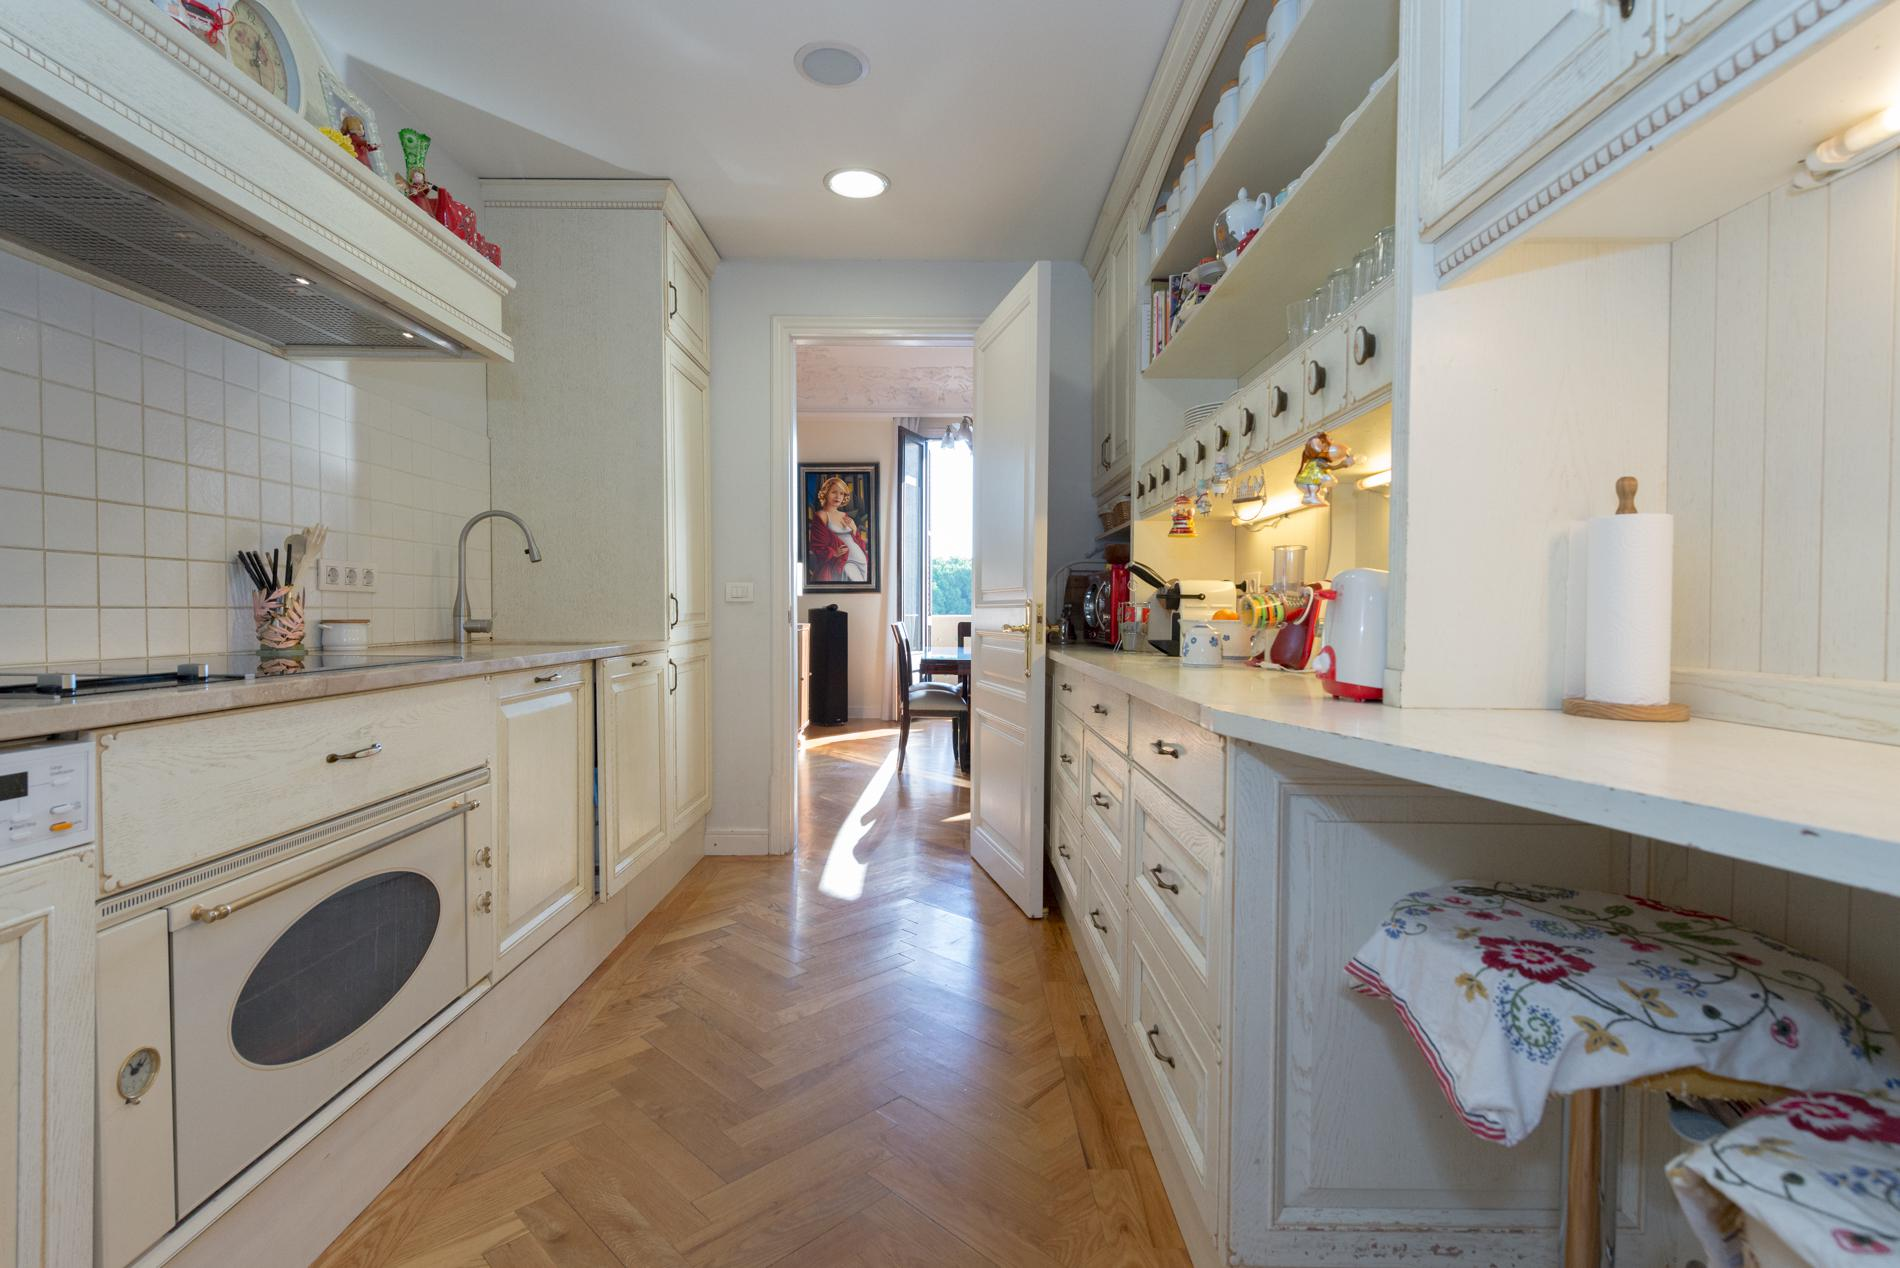 174066 Flat for sale in Eixample, Antiga Esquerre Eixample 15